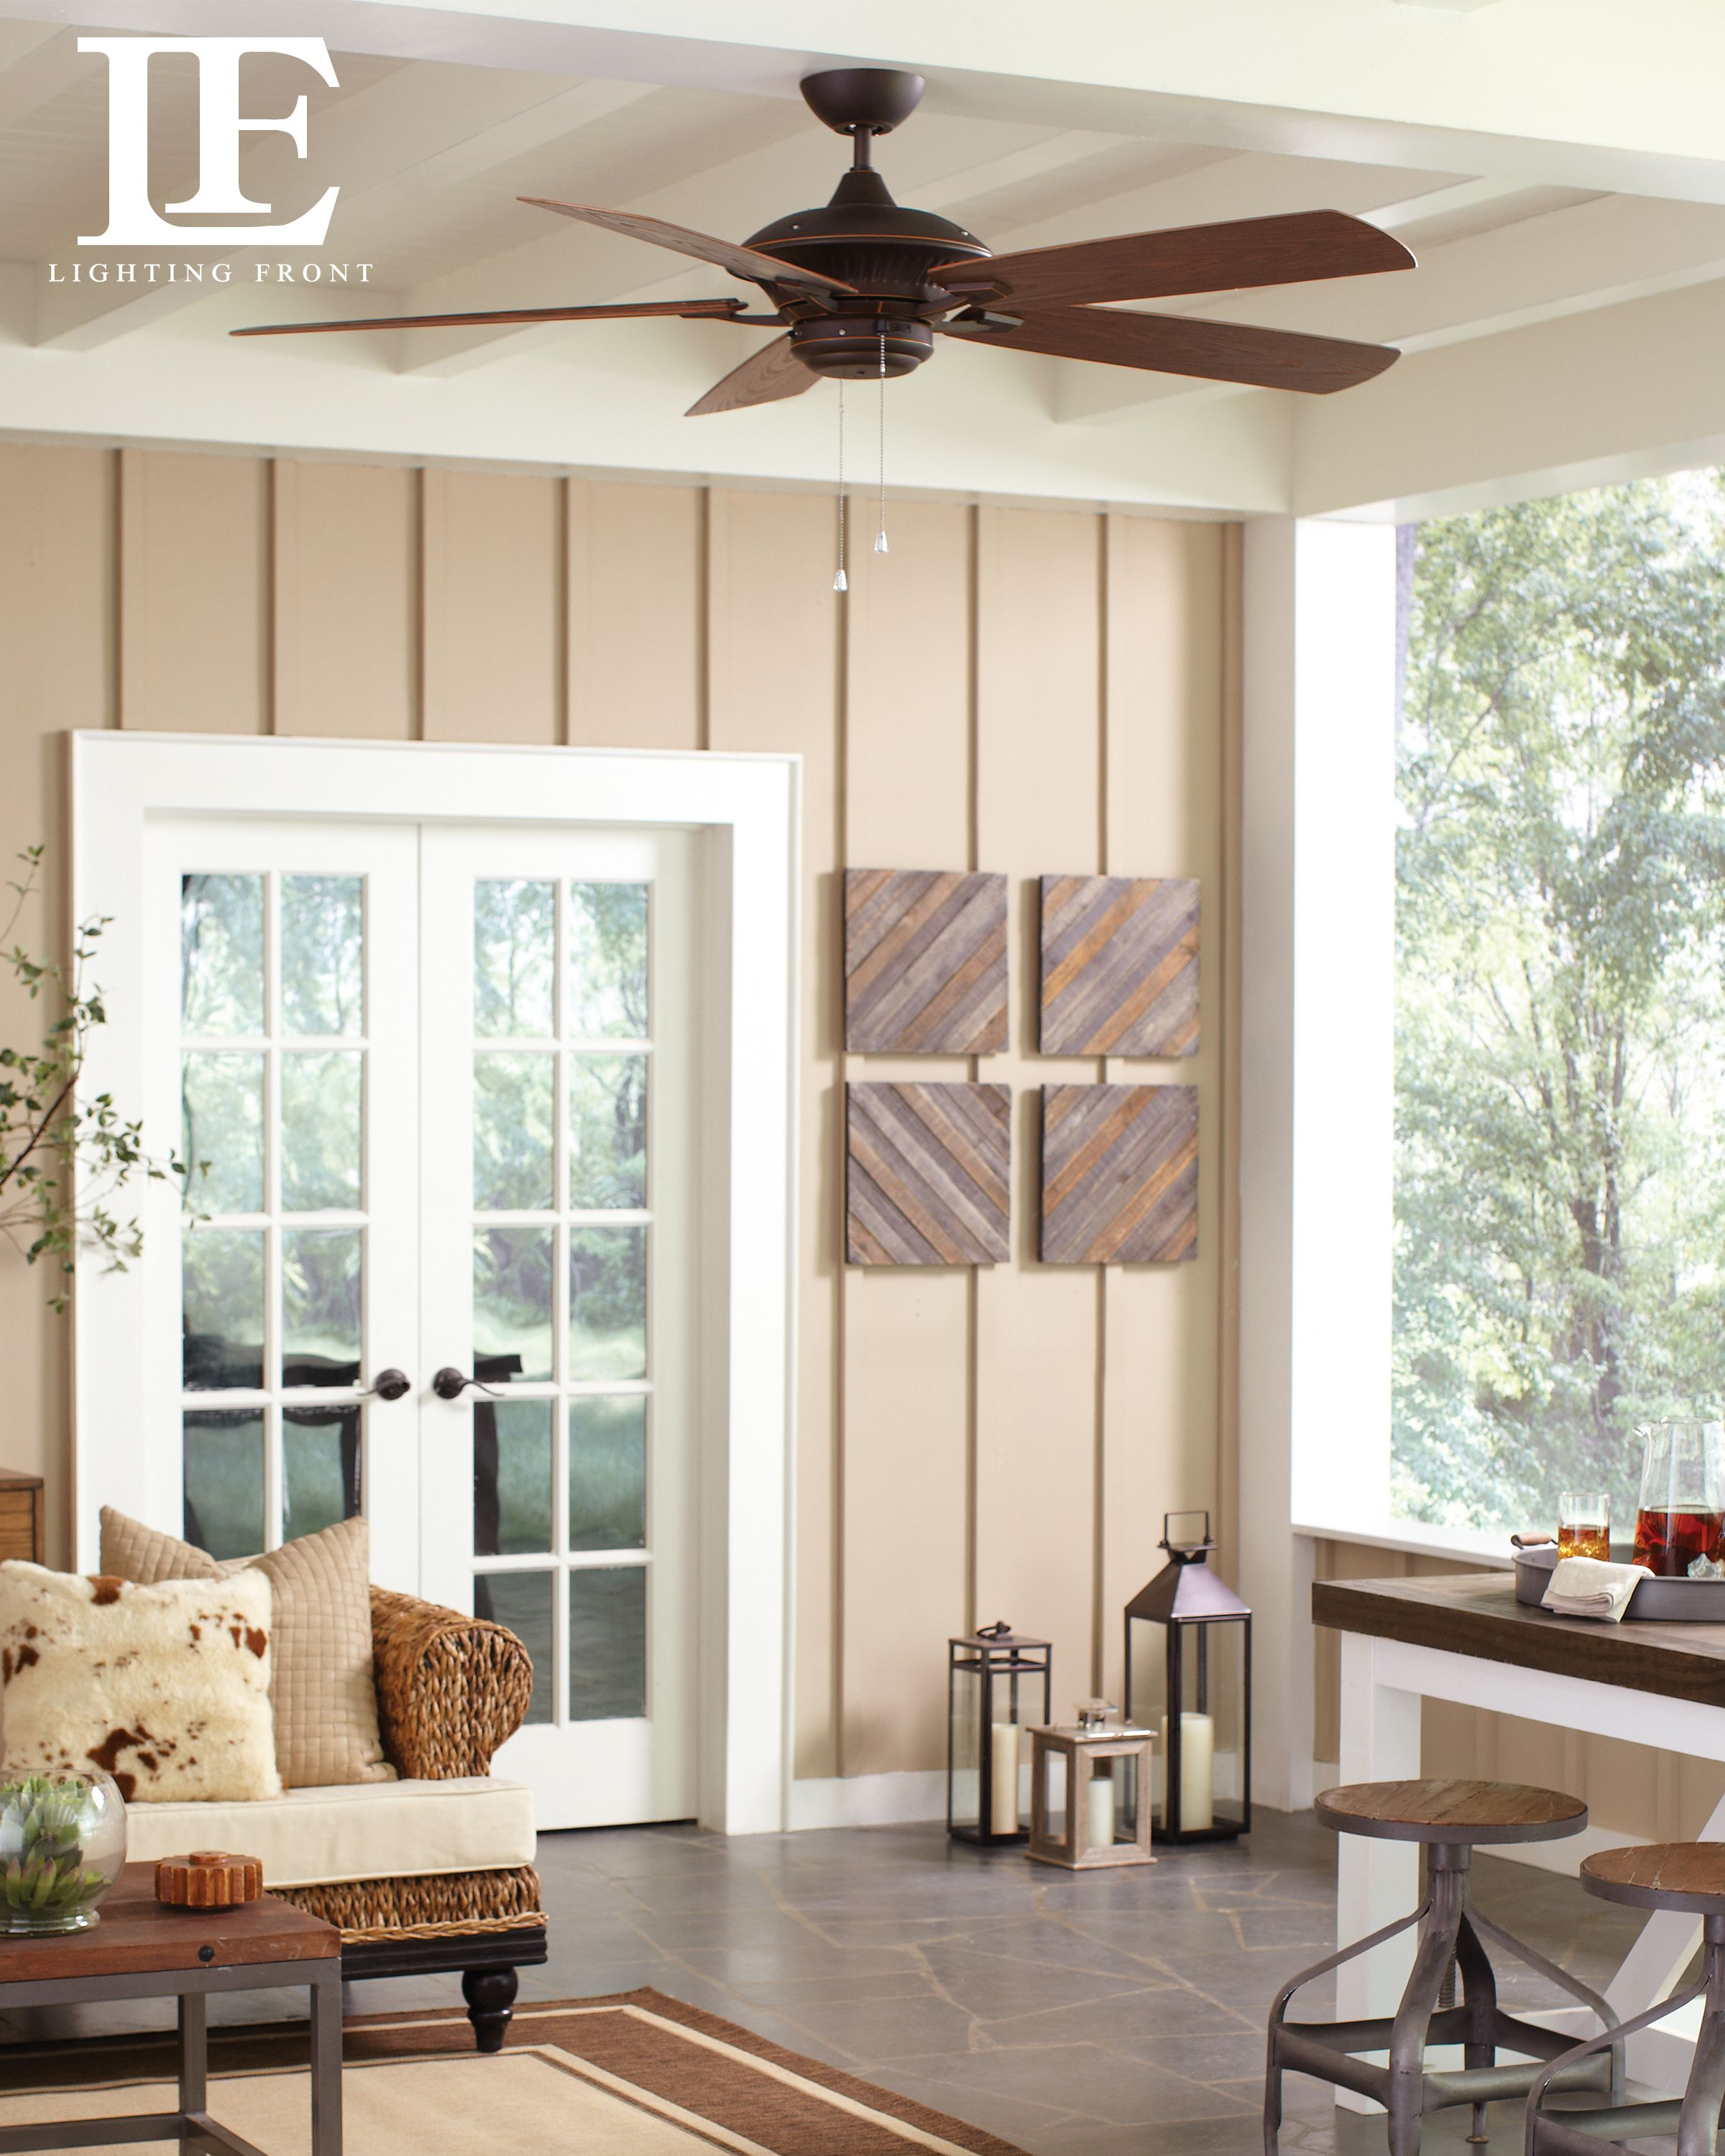 Monte Carlo Outdoor Ceiling Fan adds a stylish look to your tropical